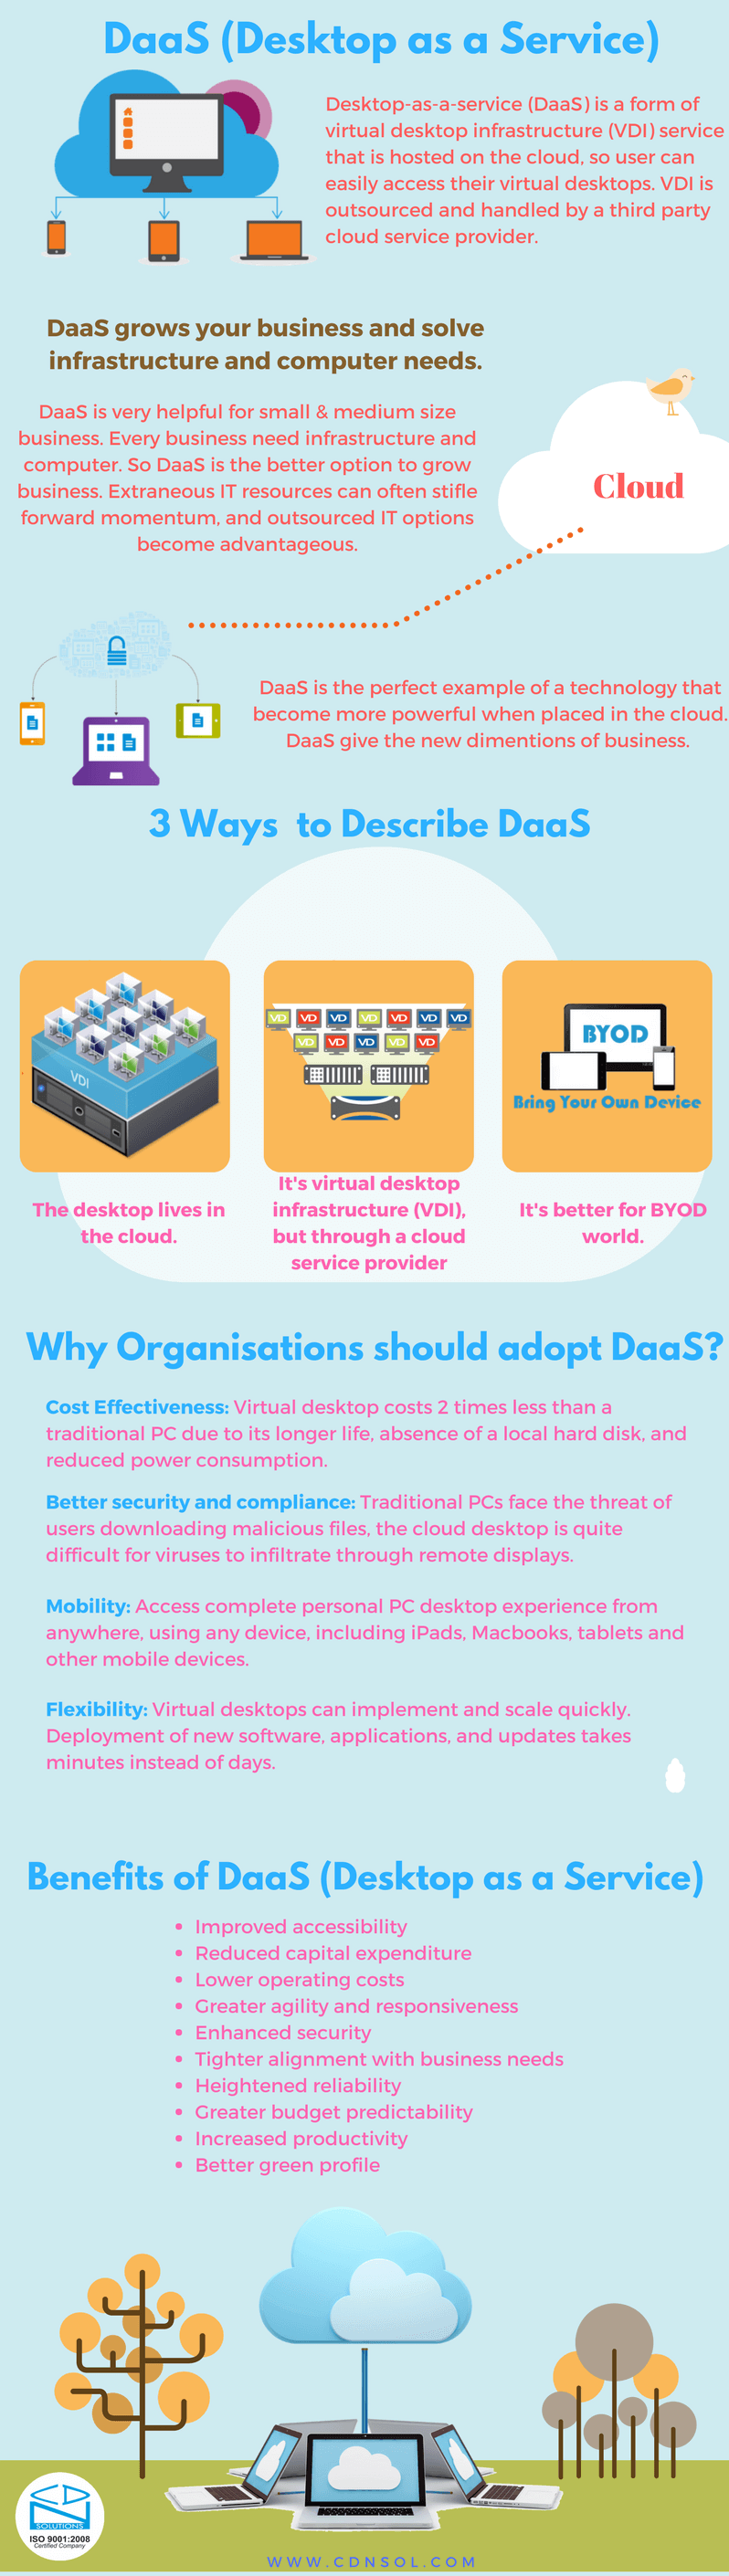 What is DaaS (Desktop as a service) and Why Organisation should Adopt DaaS?